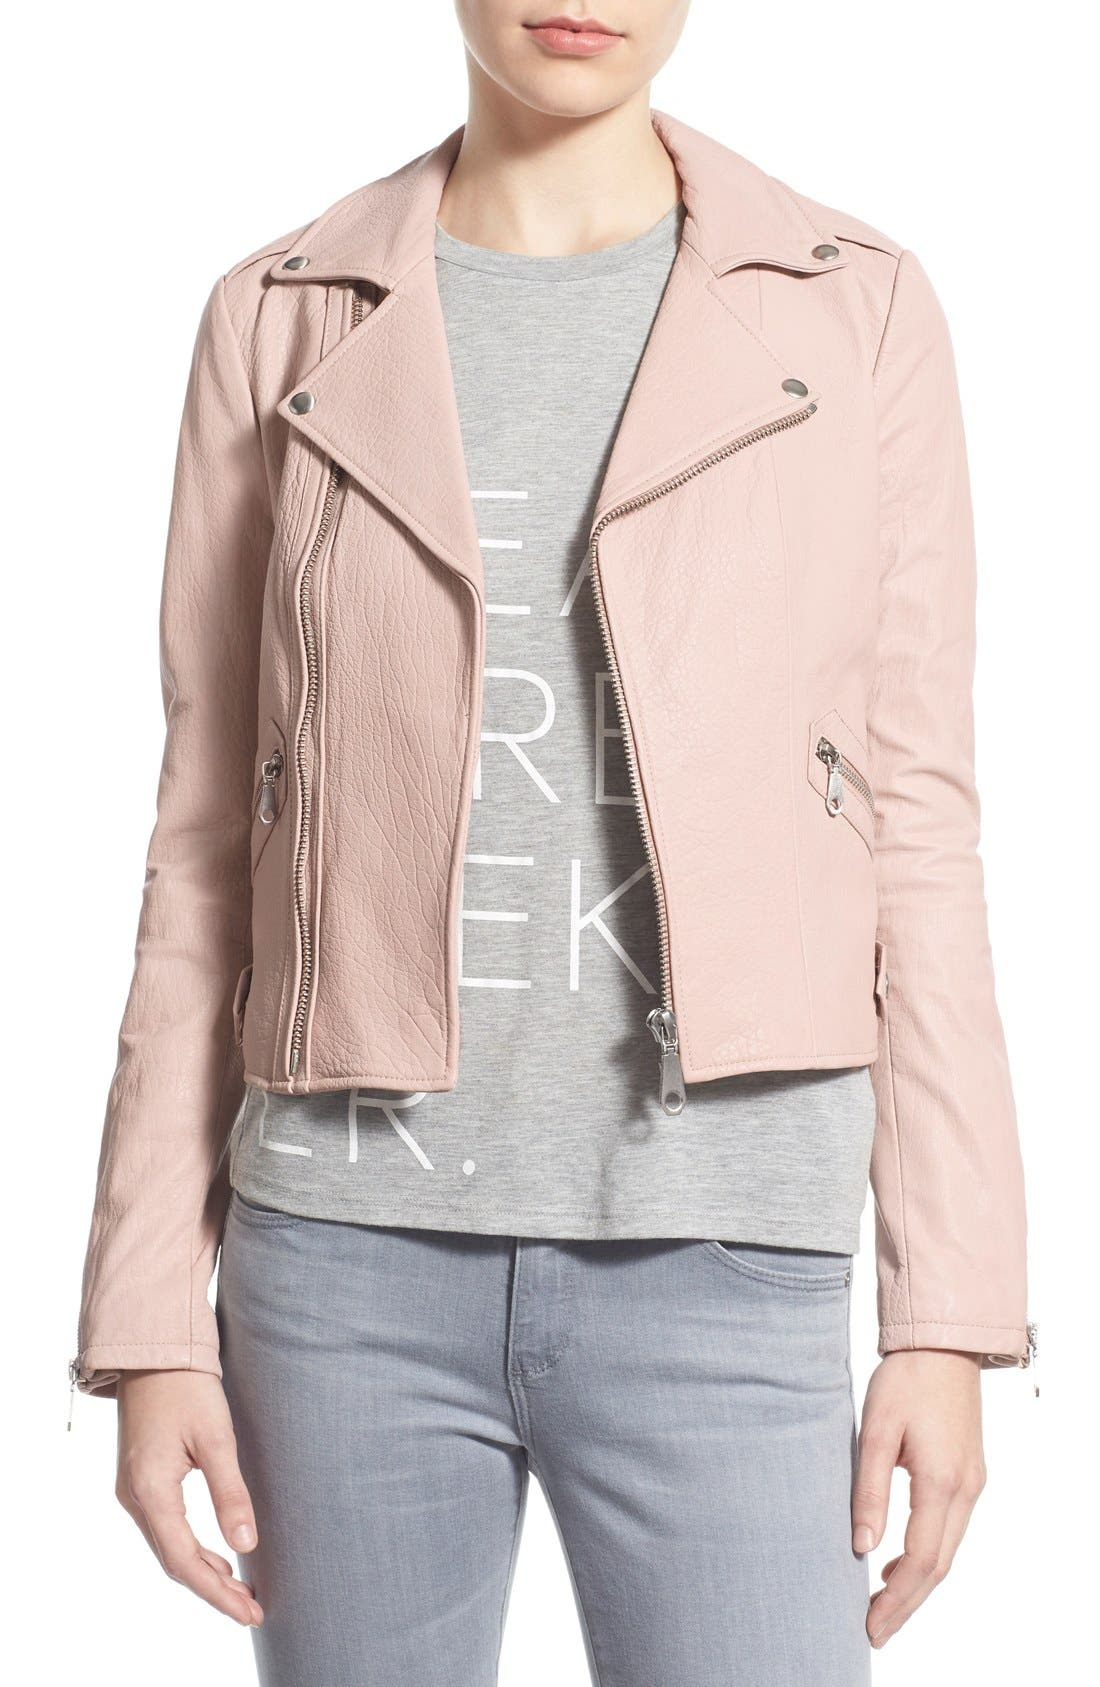 Pebble Leather Jacket,                             Main thumbnail 1, color,                             Nude Pink